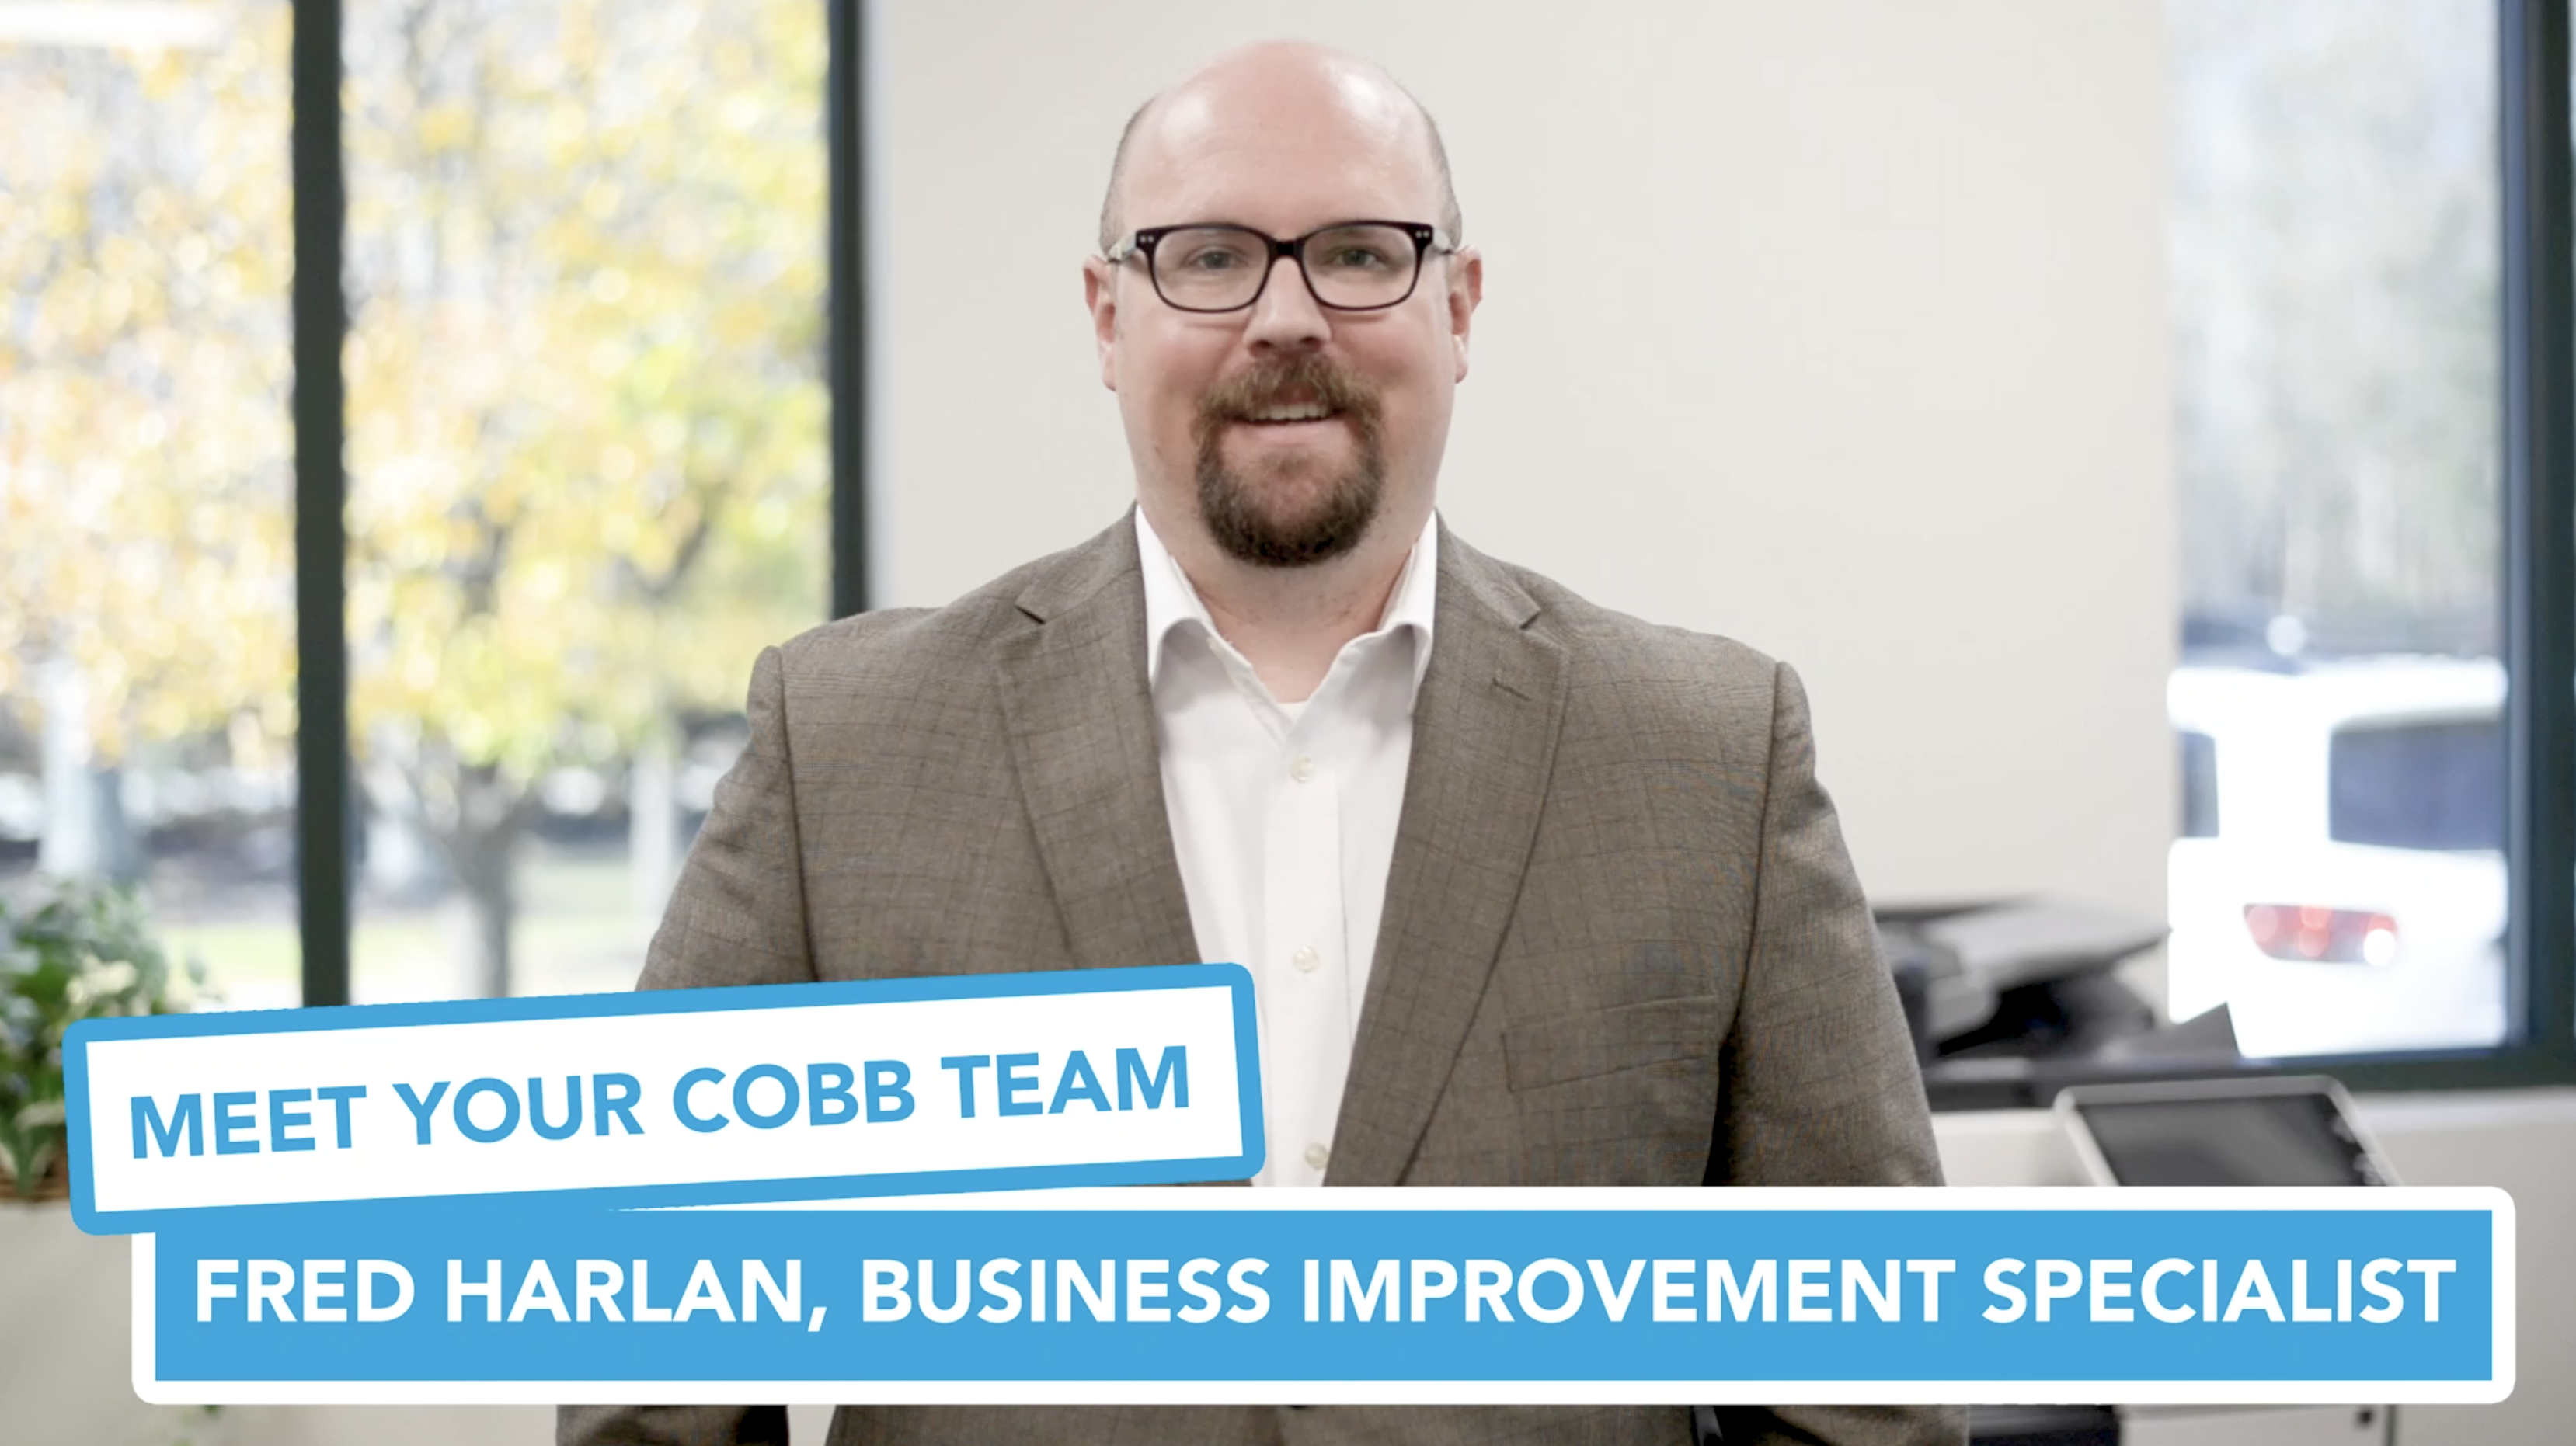 Meet Your Cobb Team Fred Harlan, Business Improvement Specialist